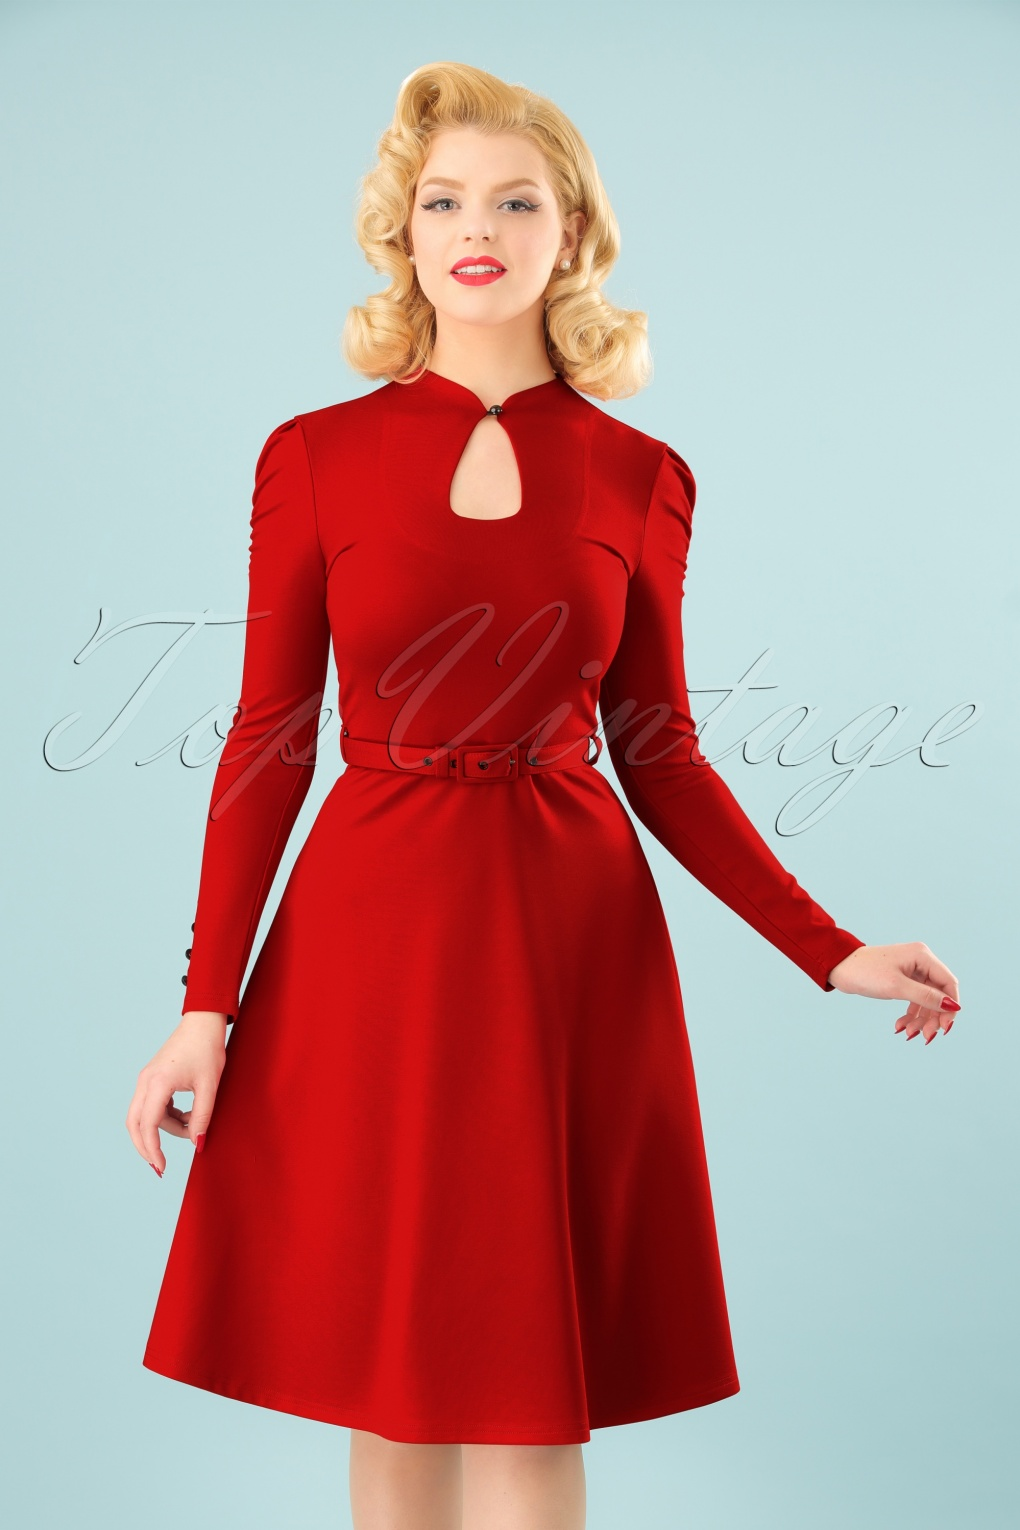 Authentic Natural 1950s Makeup History and Tutorial 50s Dita Swing Dress in Lipstick Red £57.57 AT vintagedancer.com